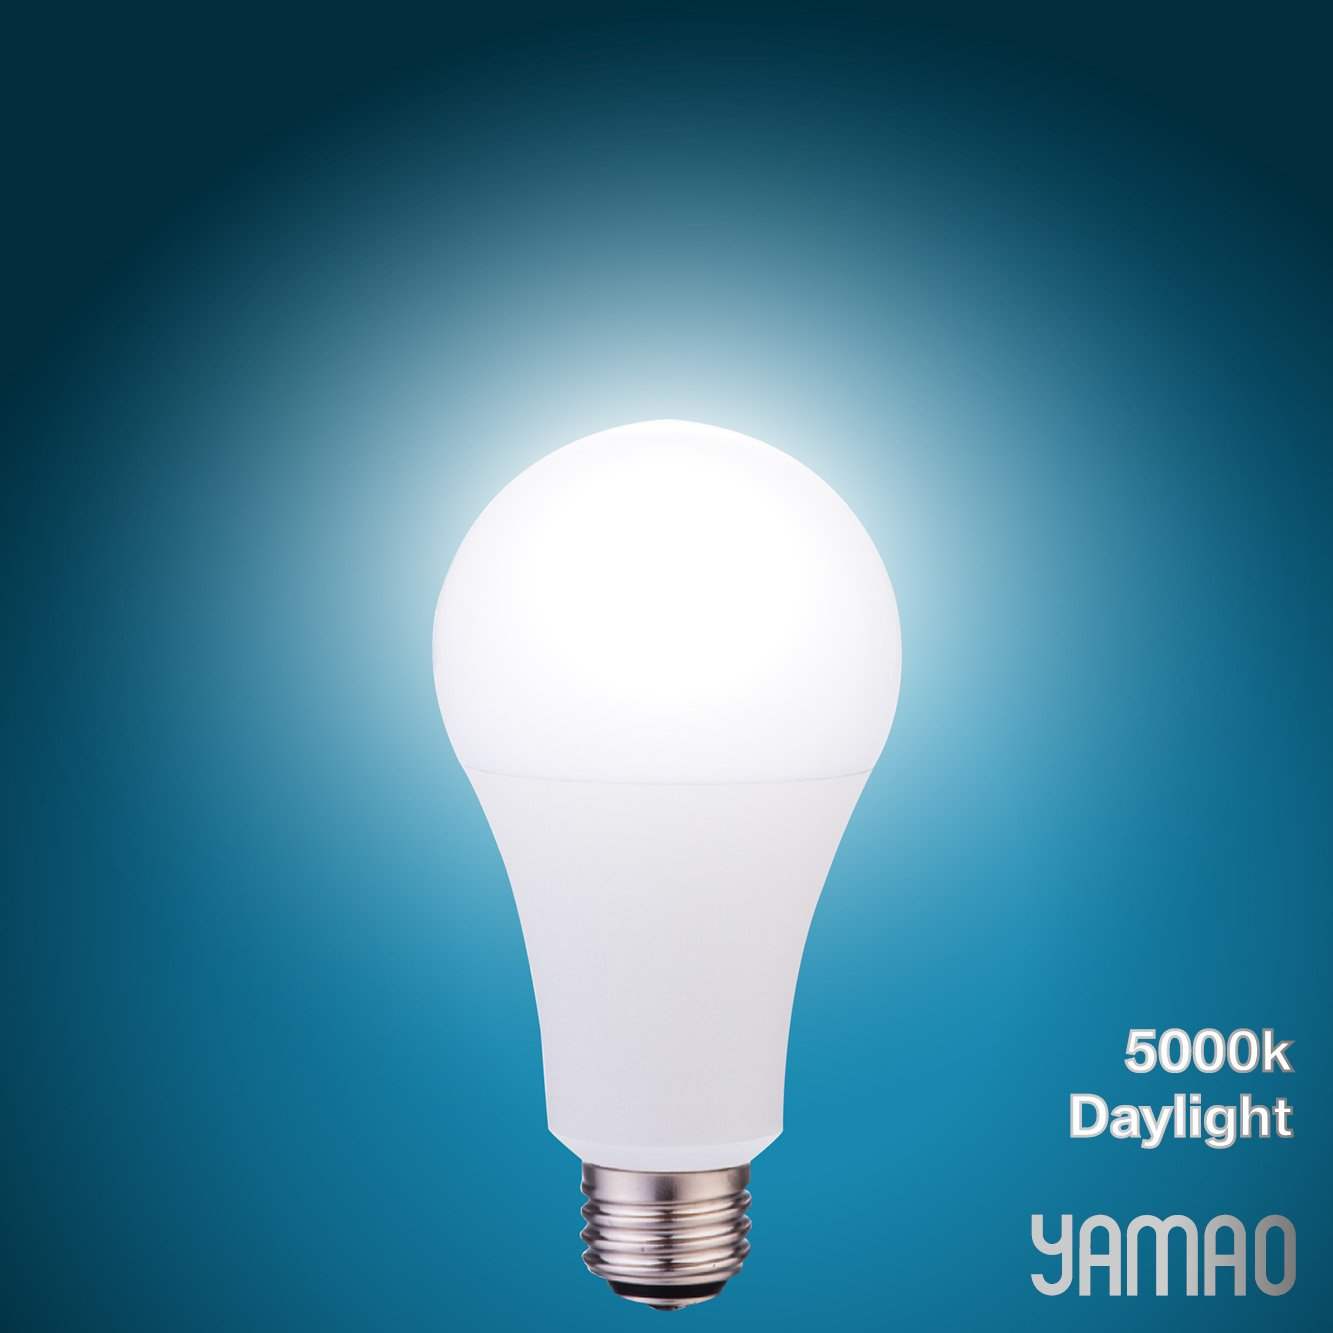 LED Light Bulbs 3-Way 50/100/150W Equivalent YAMAO A21 2700K Soft White Light Bulbs UL Listed 800/1500/2200LM (4 Pack)